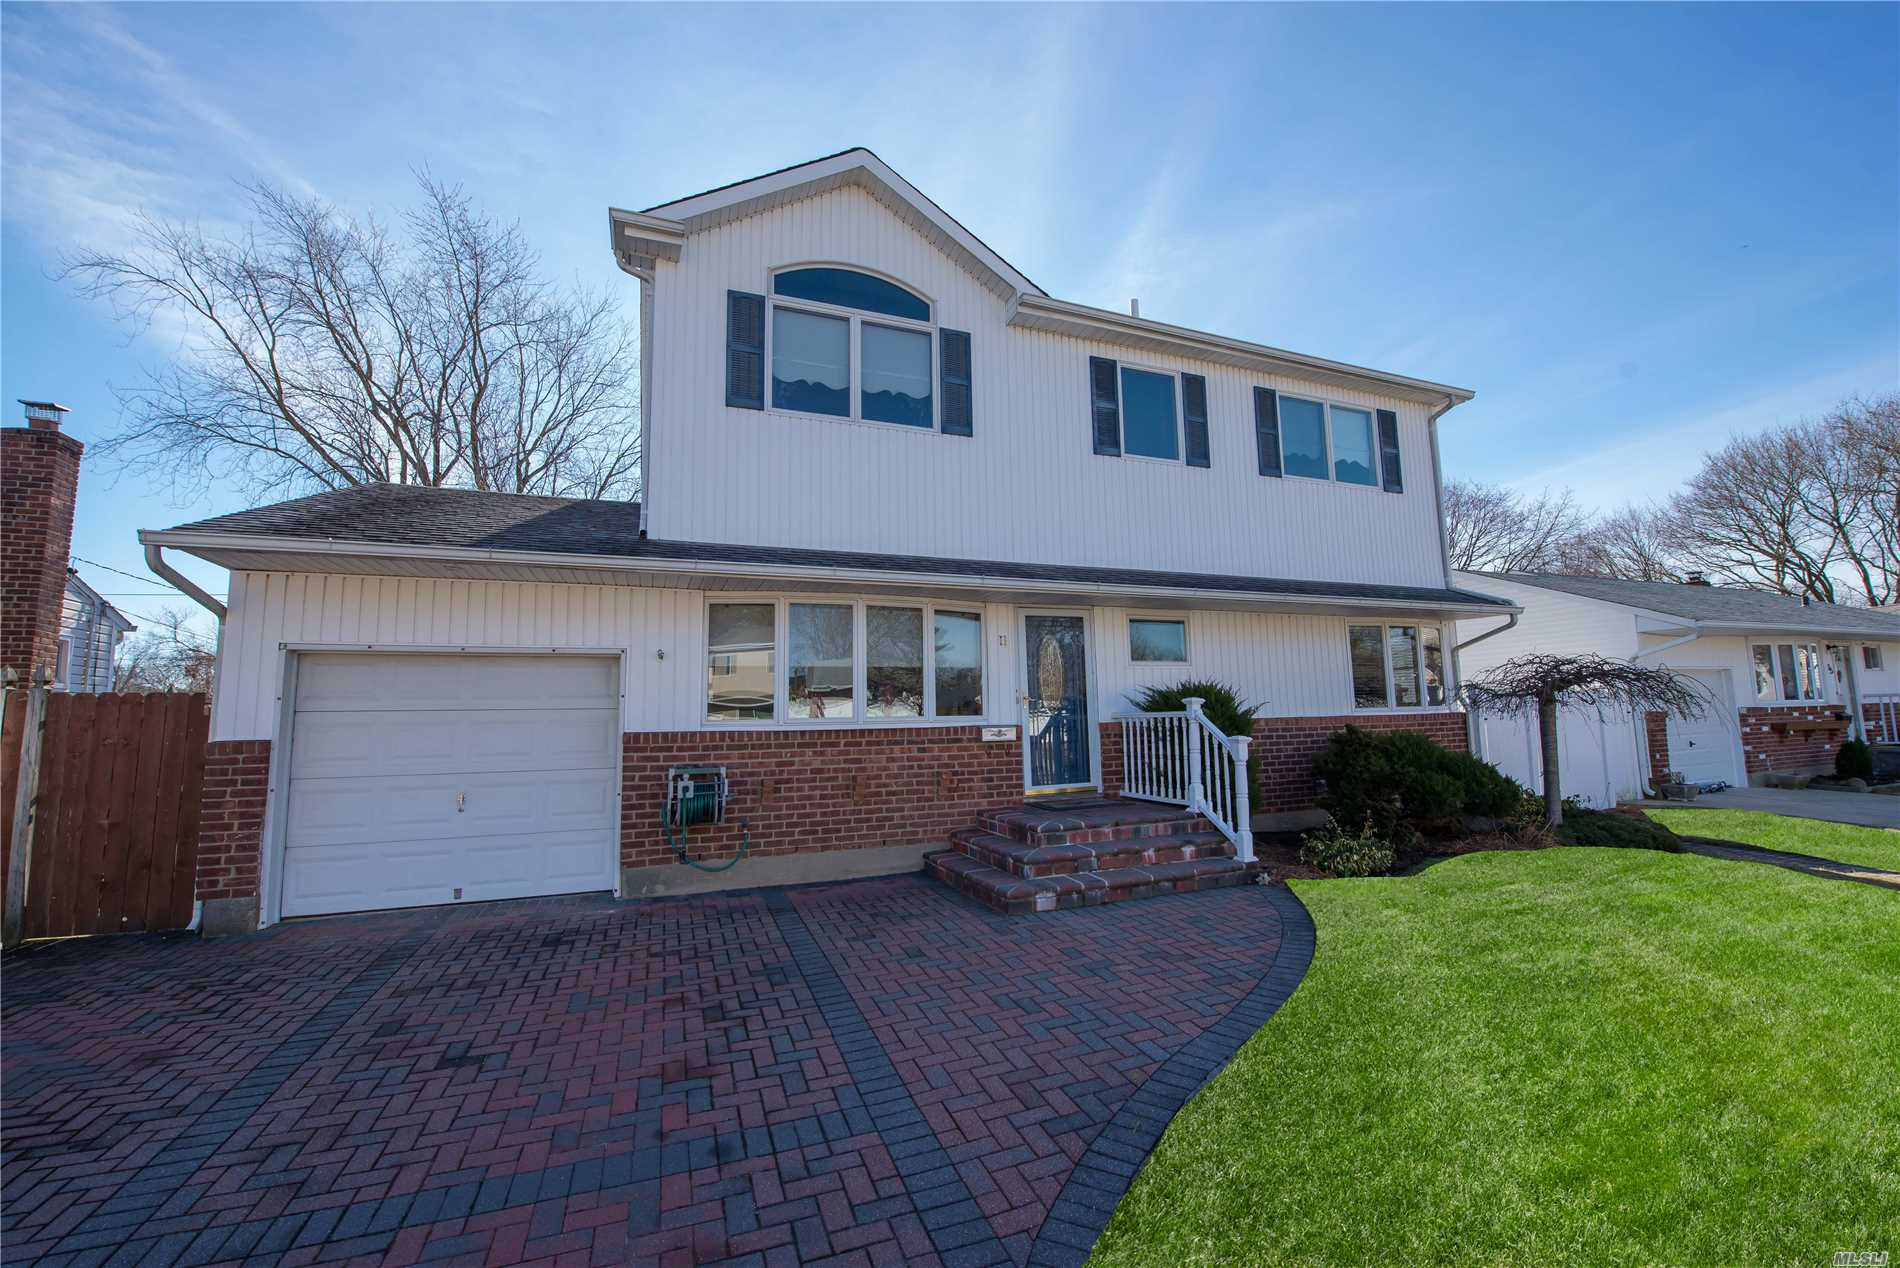 Come Take A Look At This Beautiful Ready To Move In 3 Bedroom 2.5 Ba Colonial In Old Bethpage. Featuring A Large Living Room. Expanded Kitchen W Poplar Cabinet, Ceramic Tiles, Dining Room, Eik W Party And Gliding Doors To Deck & Hardwood Floors. Finish Basement With Laundry Room. Other Features Incl. Spacious Deck With Inground Pool. High Rank Schools! Close To The Park, Golf And Mini Shopping Center. Come Make This Home Yours!